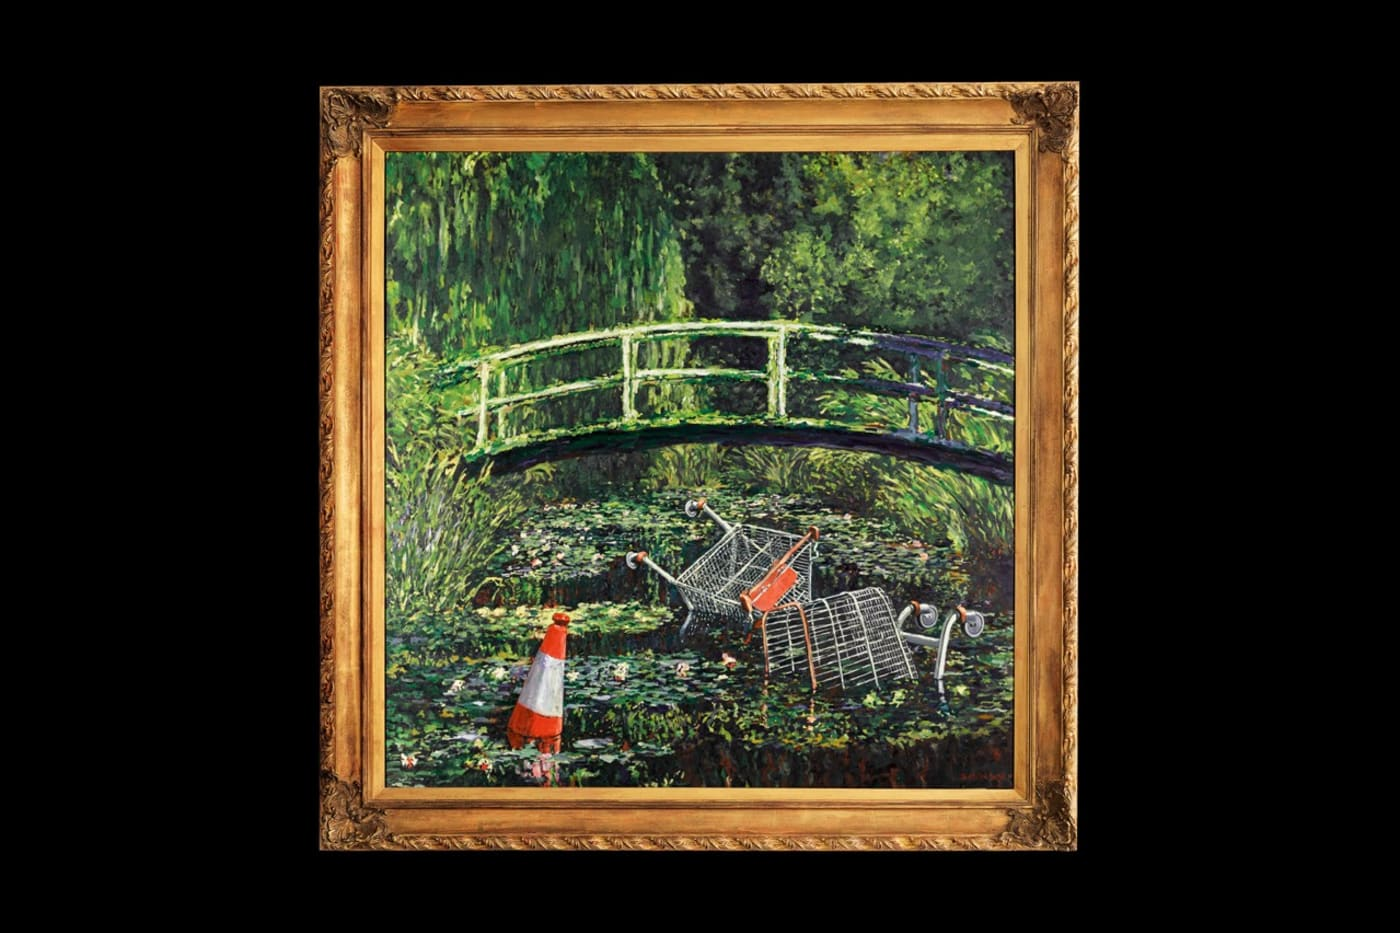 banksy show me the monet painting sothebys october 2020 auction info 1